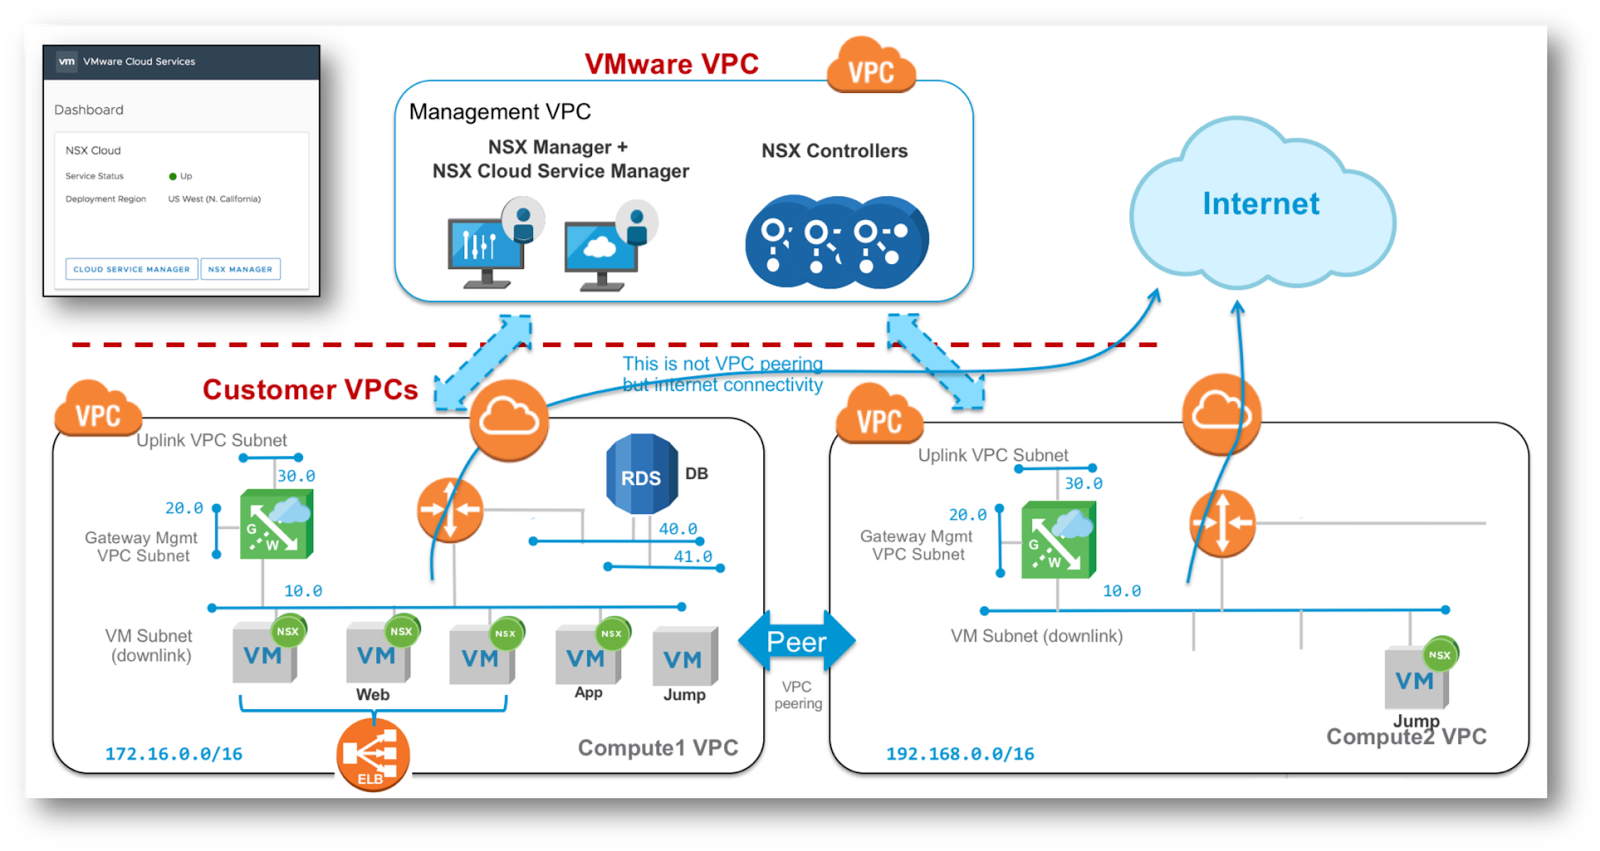 Infrastructure as Code : Build your VMware NSX Cloud lab in AWS with